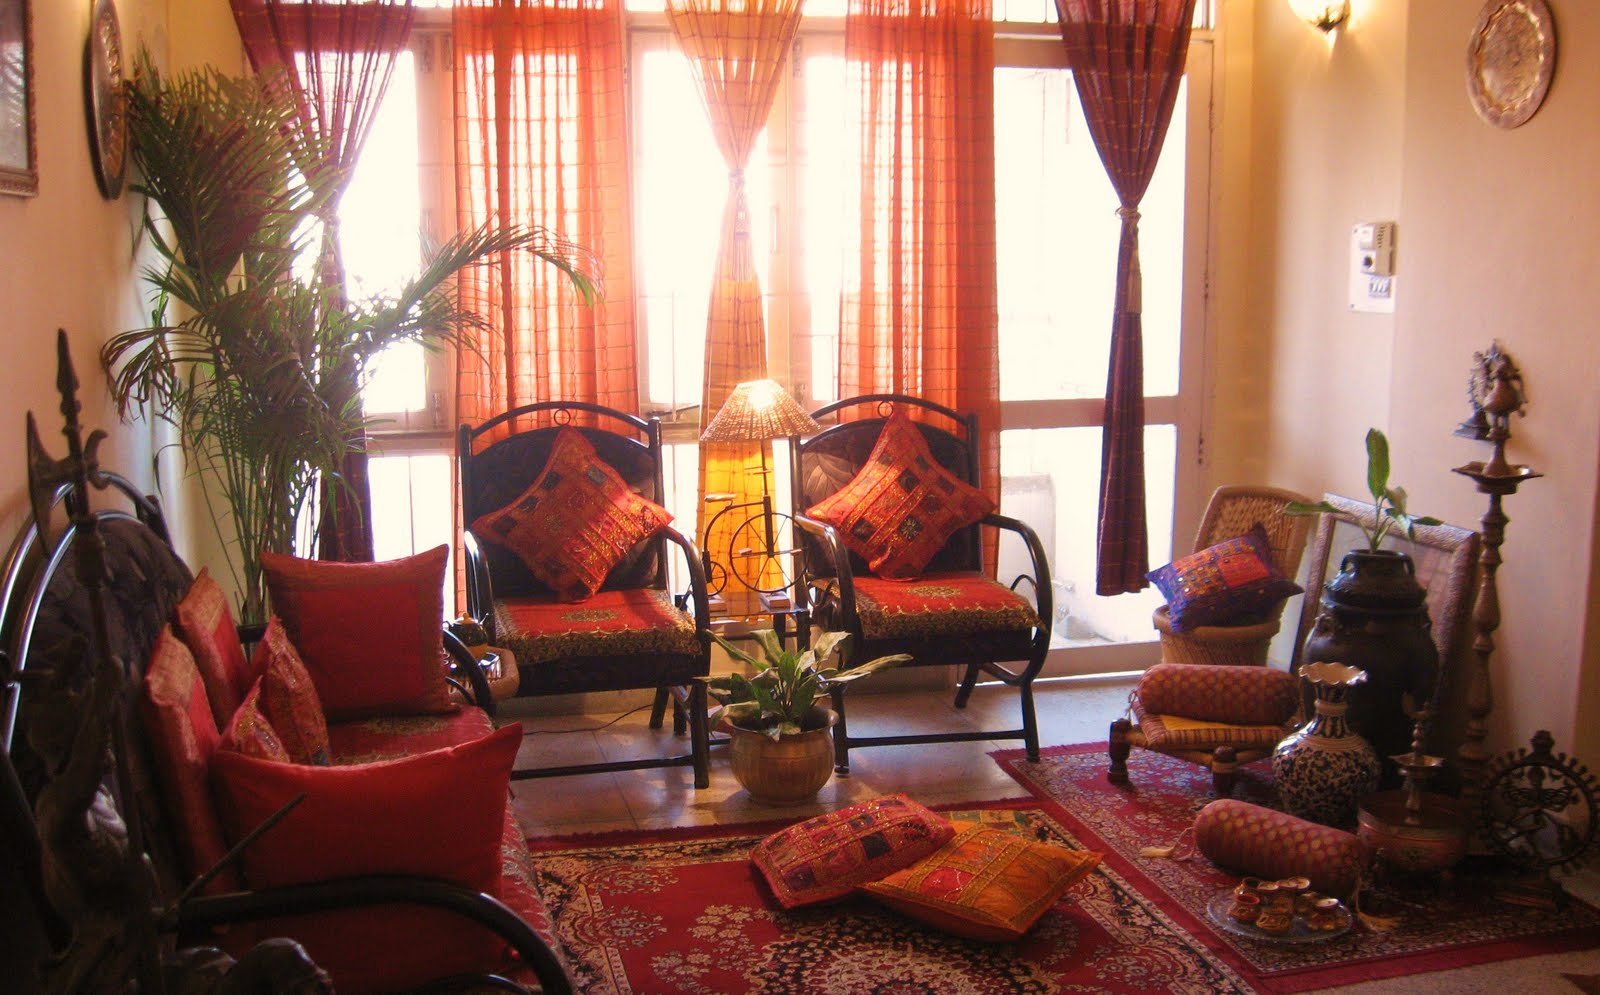 Ethnic indian decor Traditional home decor images